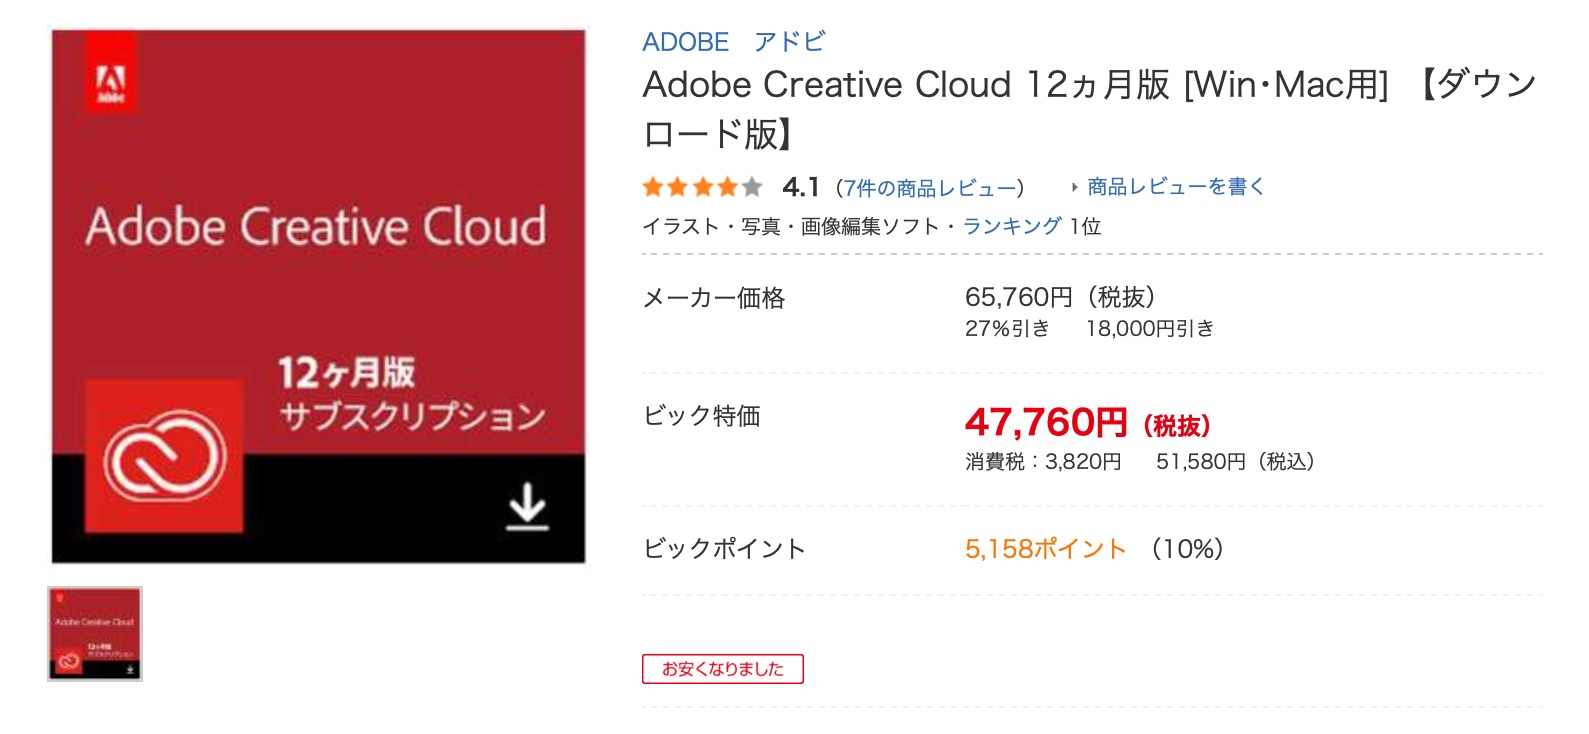 Adobe Creative Cloud 12ヵ月